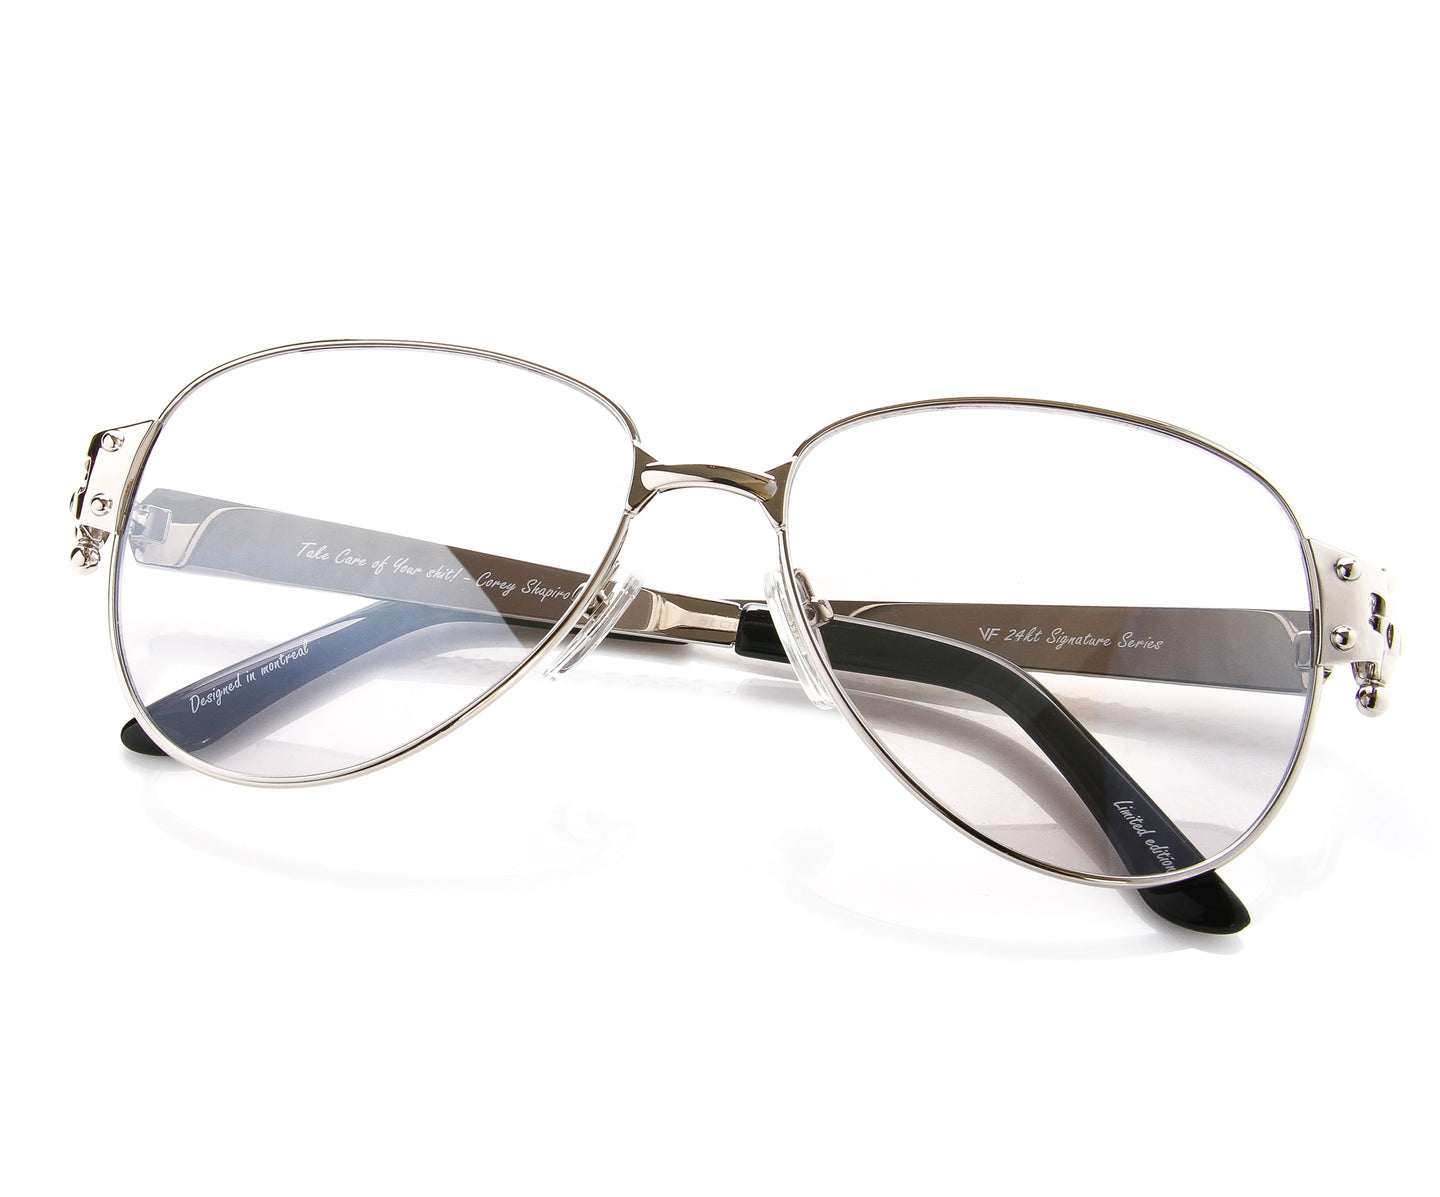 VF 2001 24KT White Gold Masterpiece (Storm Gray), VF Masterpiece , glasses frames, eyeglasses online, eyeglass frames, mens glasses, womens glasses, buy glasses online, designer eyeglasses, vintage sunglasses, retro sunglasses, vintage glasses, sunglass, eyeglass, glasses, lens, vintage frames company, vf